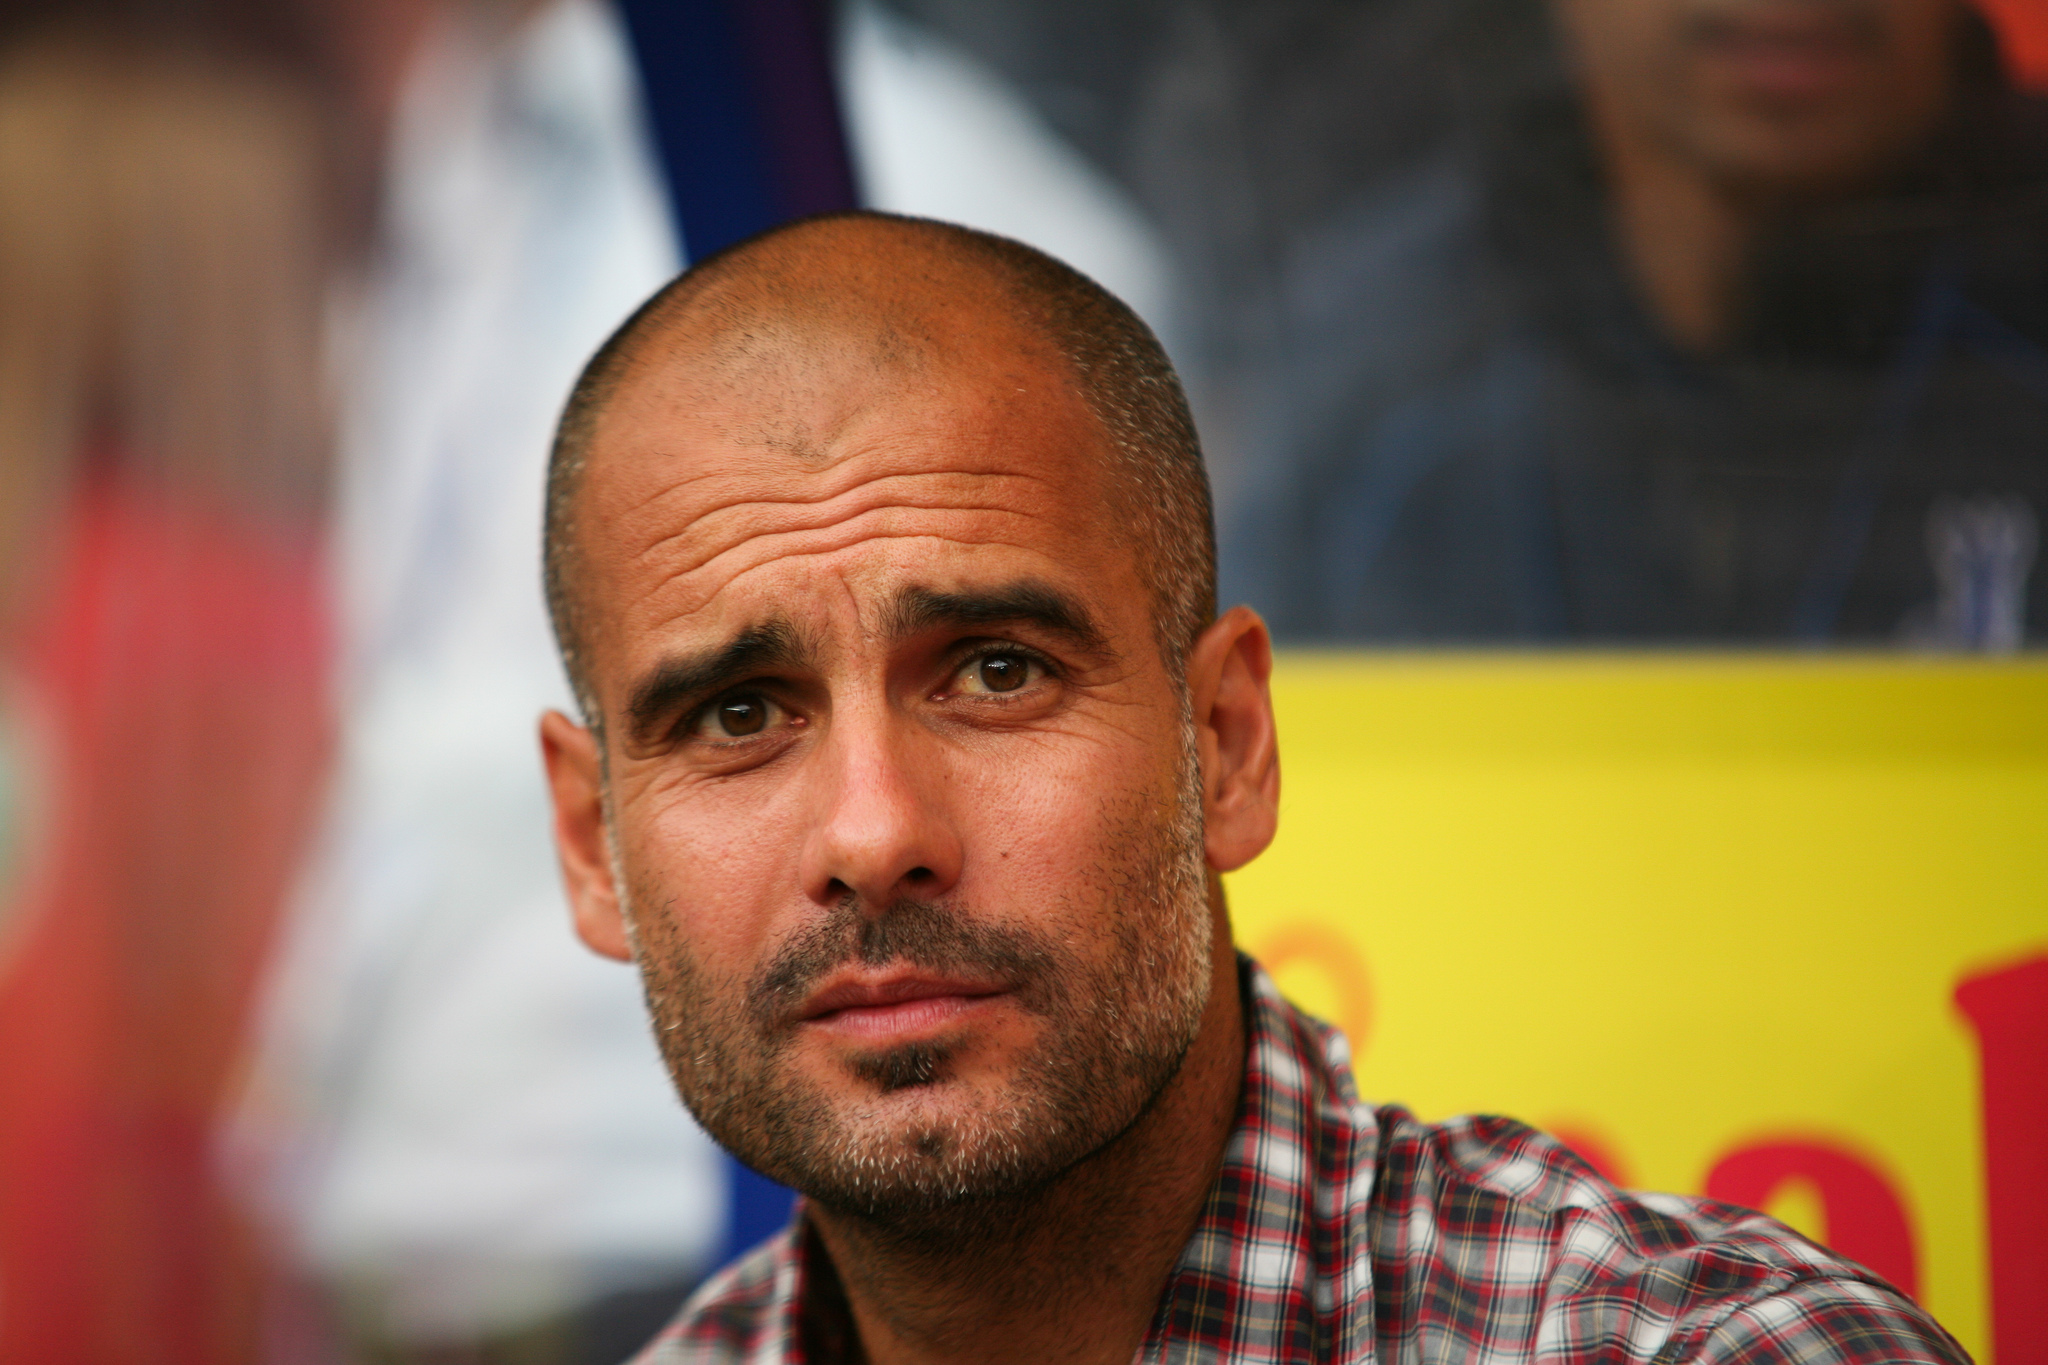 Former FC Barcelona player and manager Pep Guardiola (Photo: Thomas Rodenbücher/Flickr)